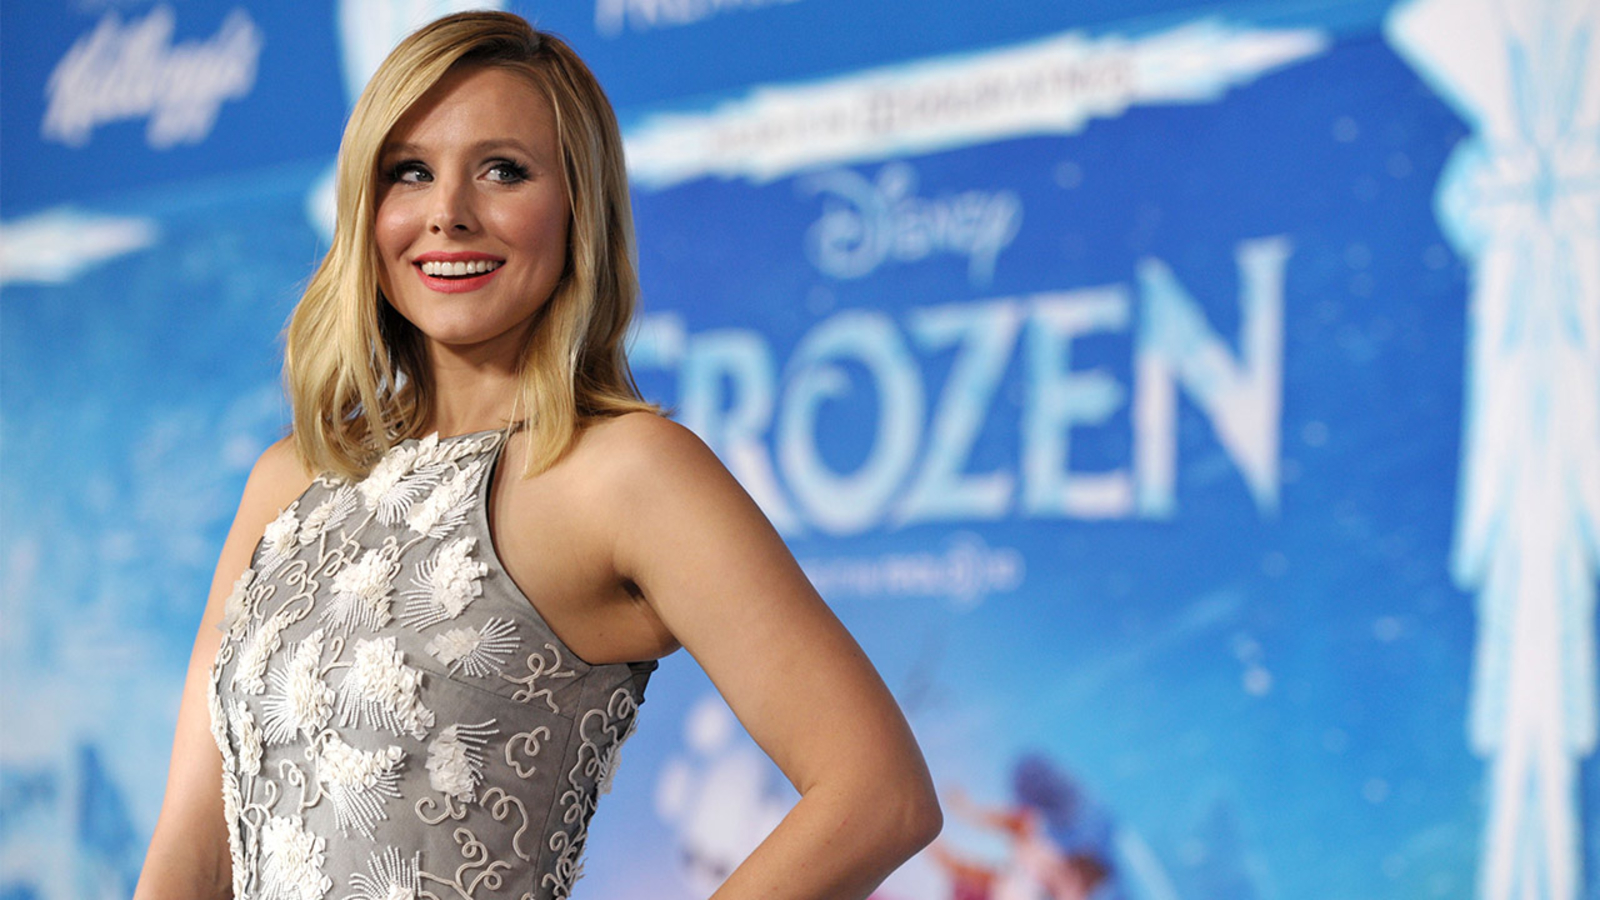 Kristen Bell Leaves Voicemail As Anna From Frozen For Girl With